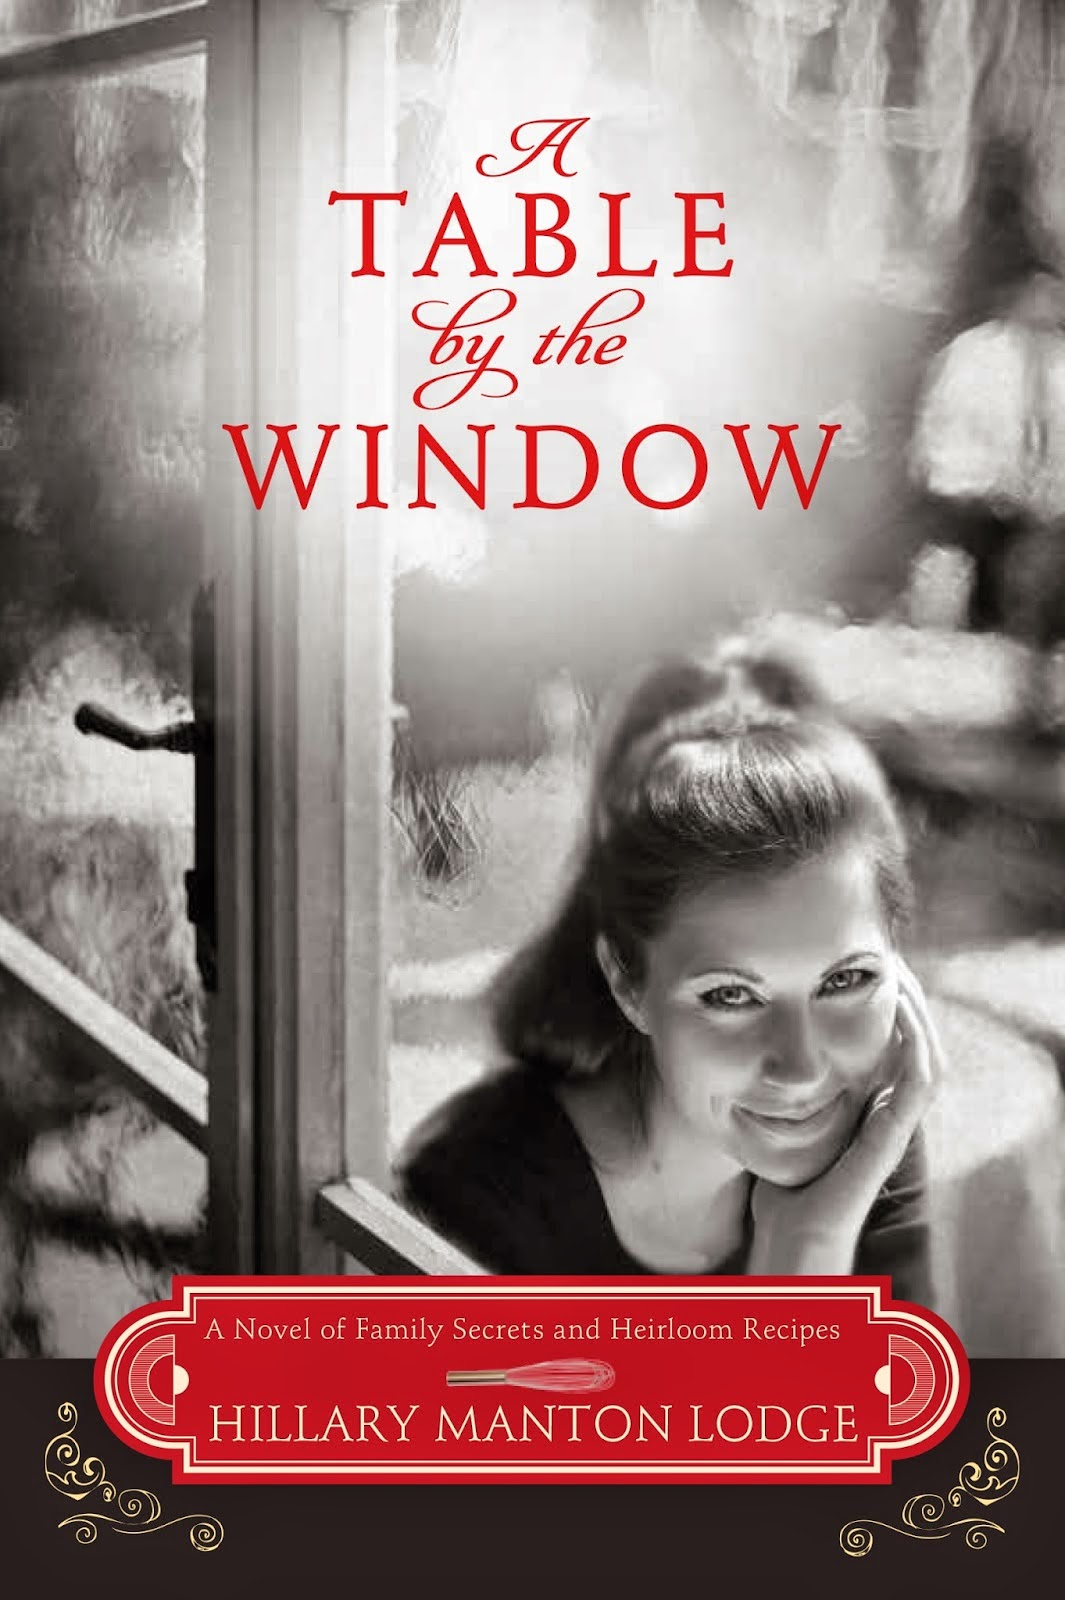 'A Table by the Window': Food, Family and Faith. A review of the novel by Hillary Manton Lodge. All text © Rissi JC